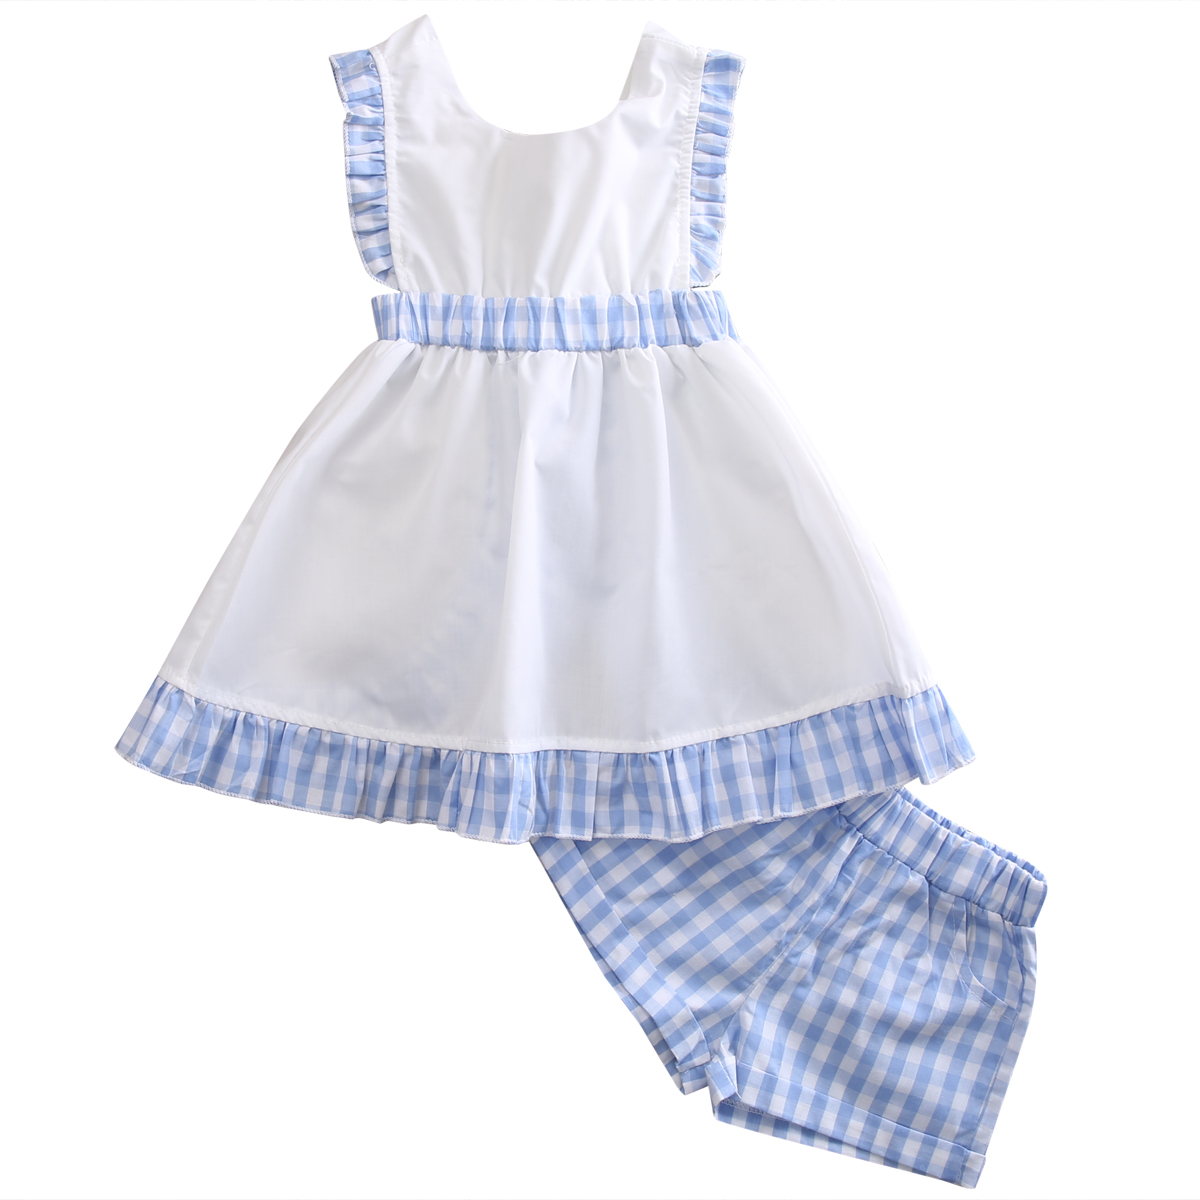 kids Girls Princess Clothing Set Ruffle Plaid Baby Dress Tops Backless Cute Shorts 2-7Y Outfits Clothes Set 2PCS Summer baby girls summer clothing girls july 4th anchored in god s word shorts clothes kids anchor clothing with accessories